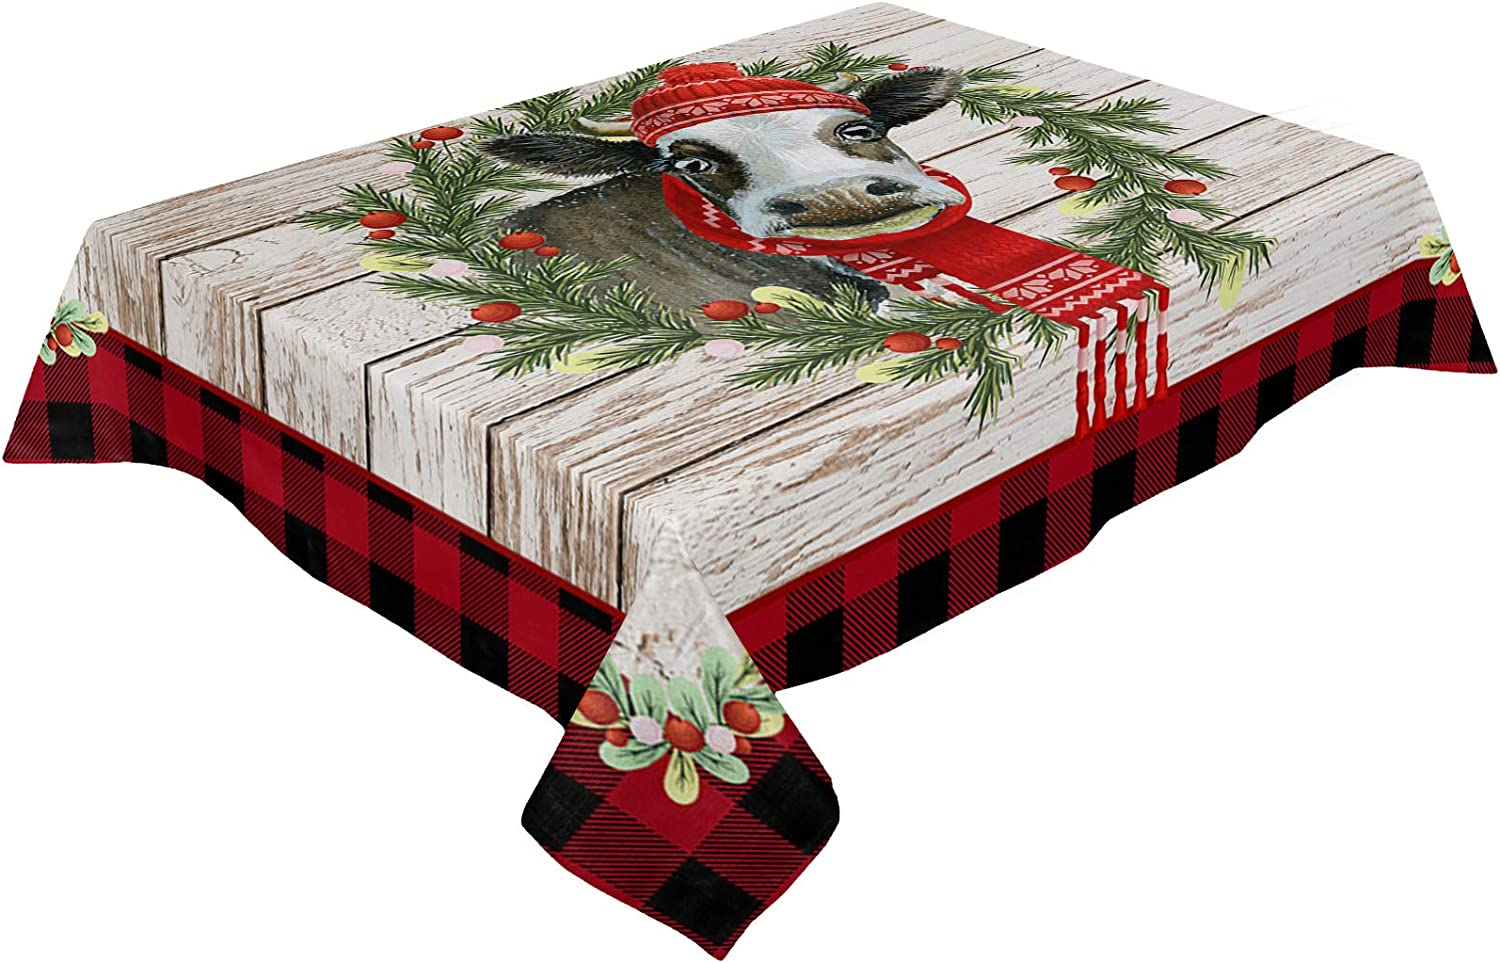 ARTSHOWING Christmas Tablecloths Waterproof Lin Max 84% OFF Cotton Washable Direct store